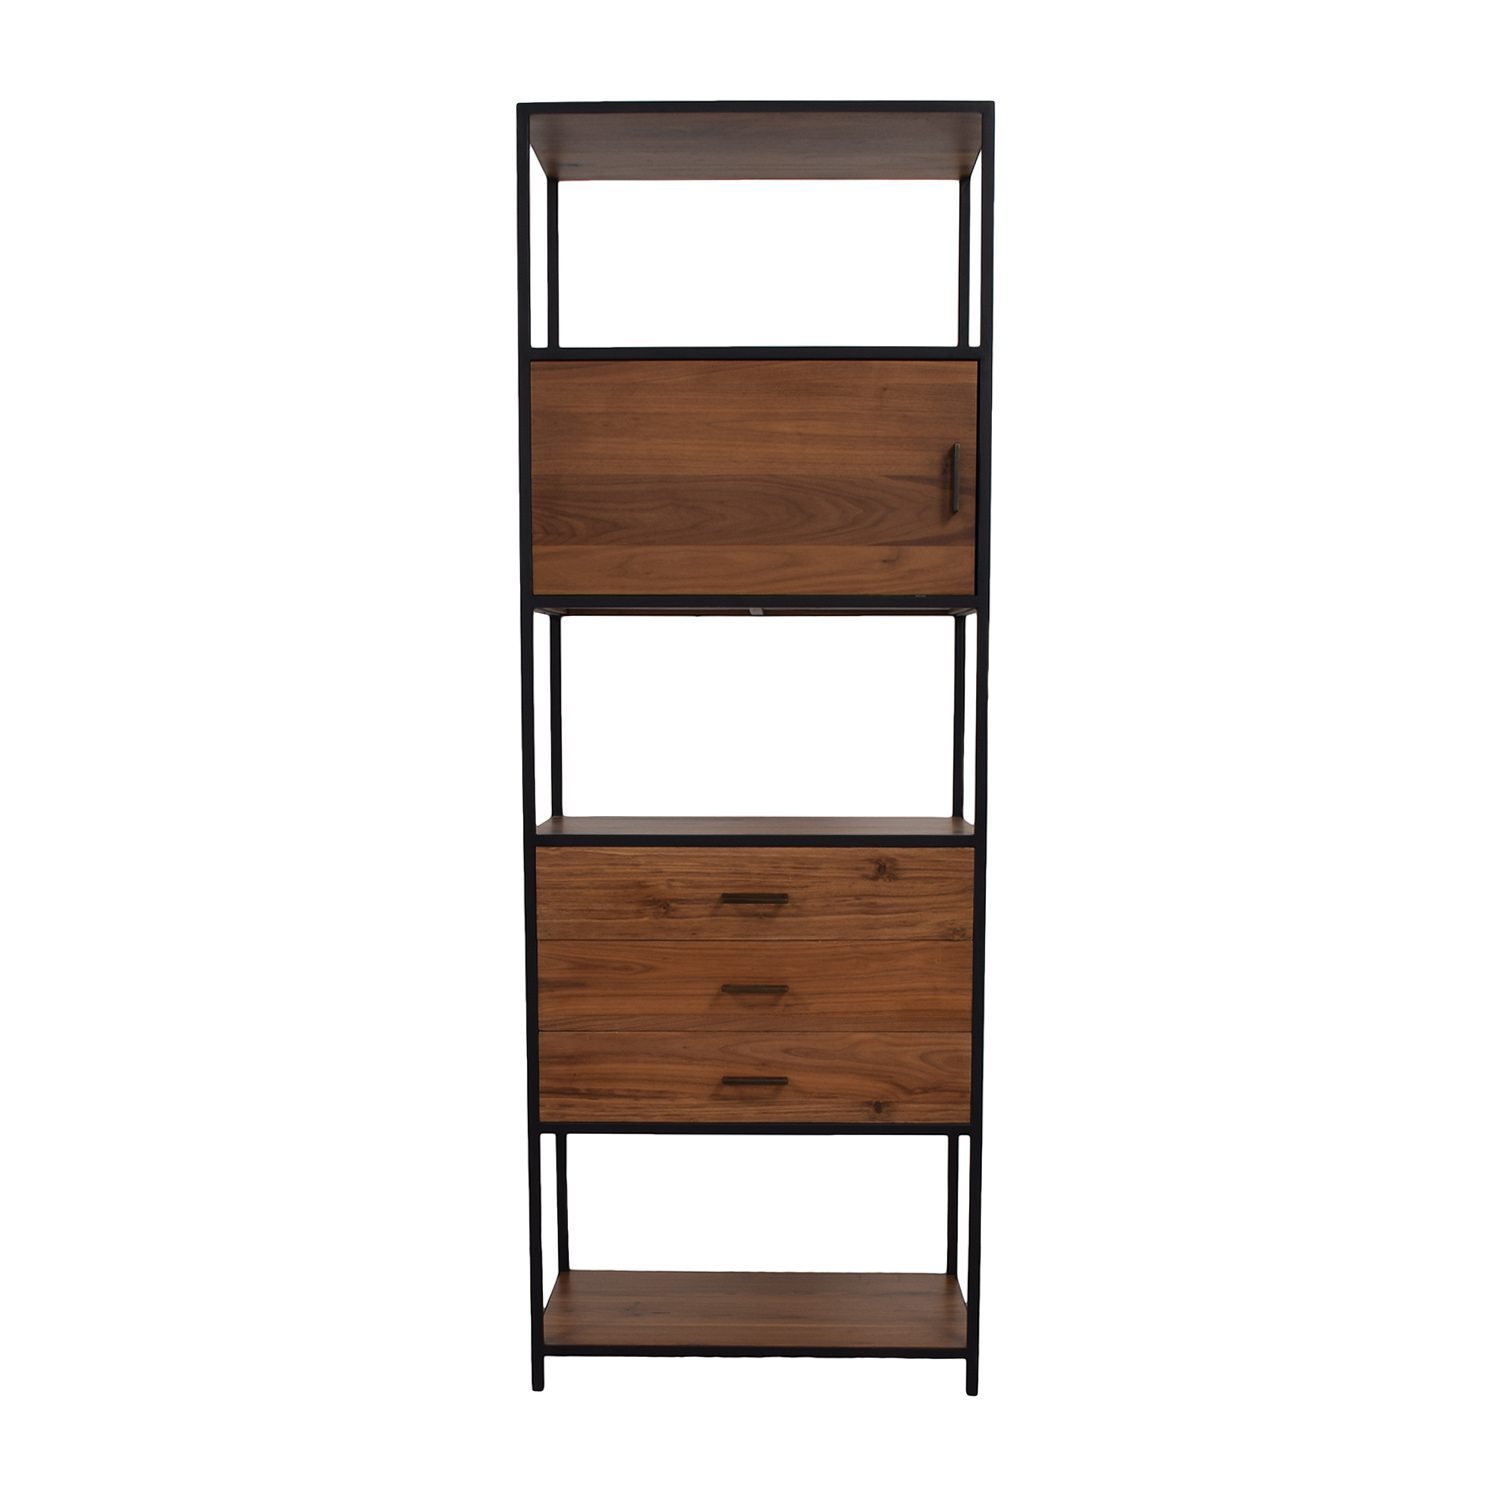 West Elm West Elm Industrial Wood and Black Bookshelf nyc